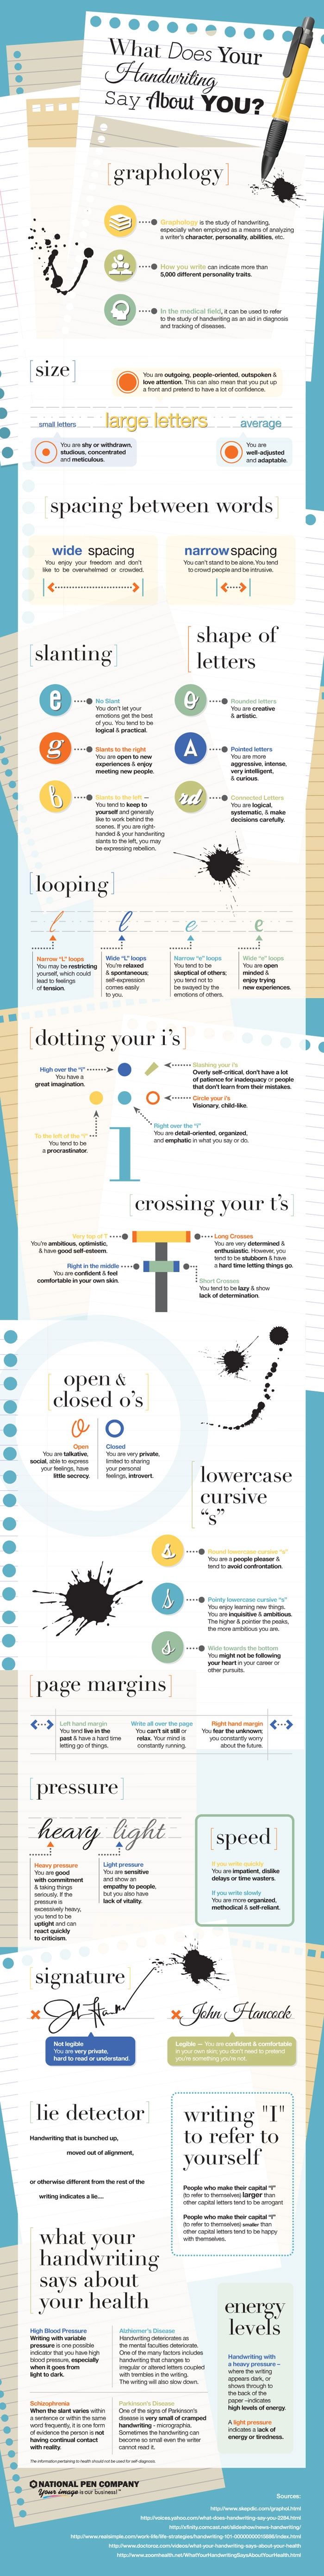 handwriting-infographic-700